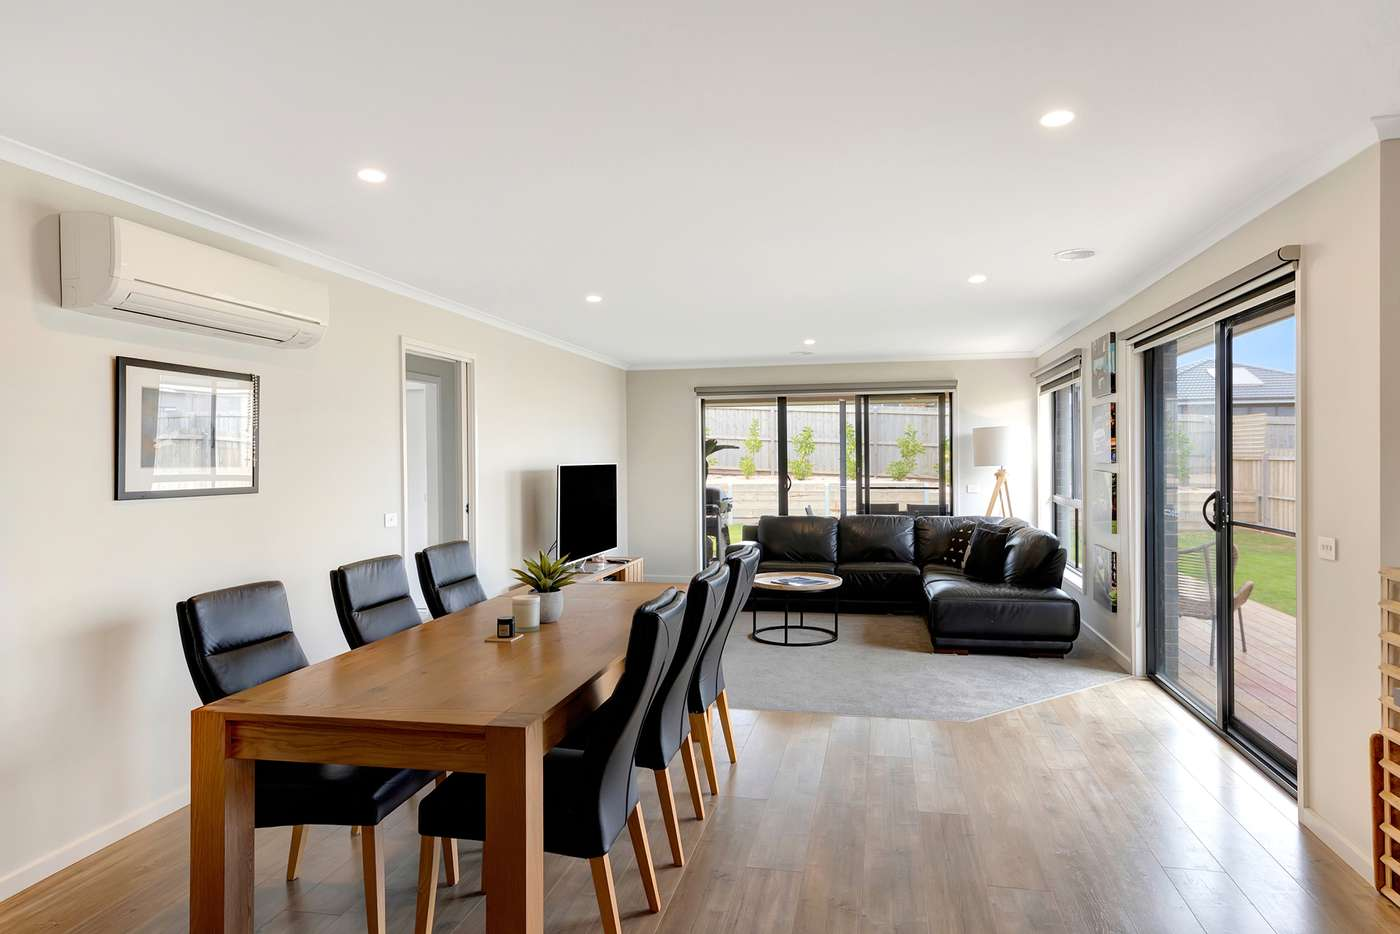 Fifth view of Homely house listing, 9 Gat Sing Way, Warrnambool VIC 3280